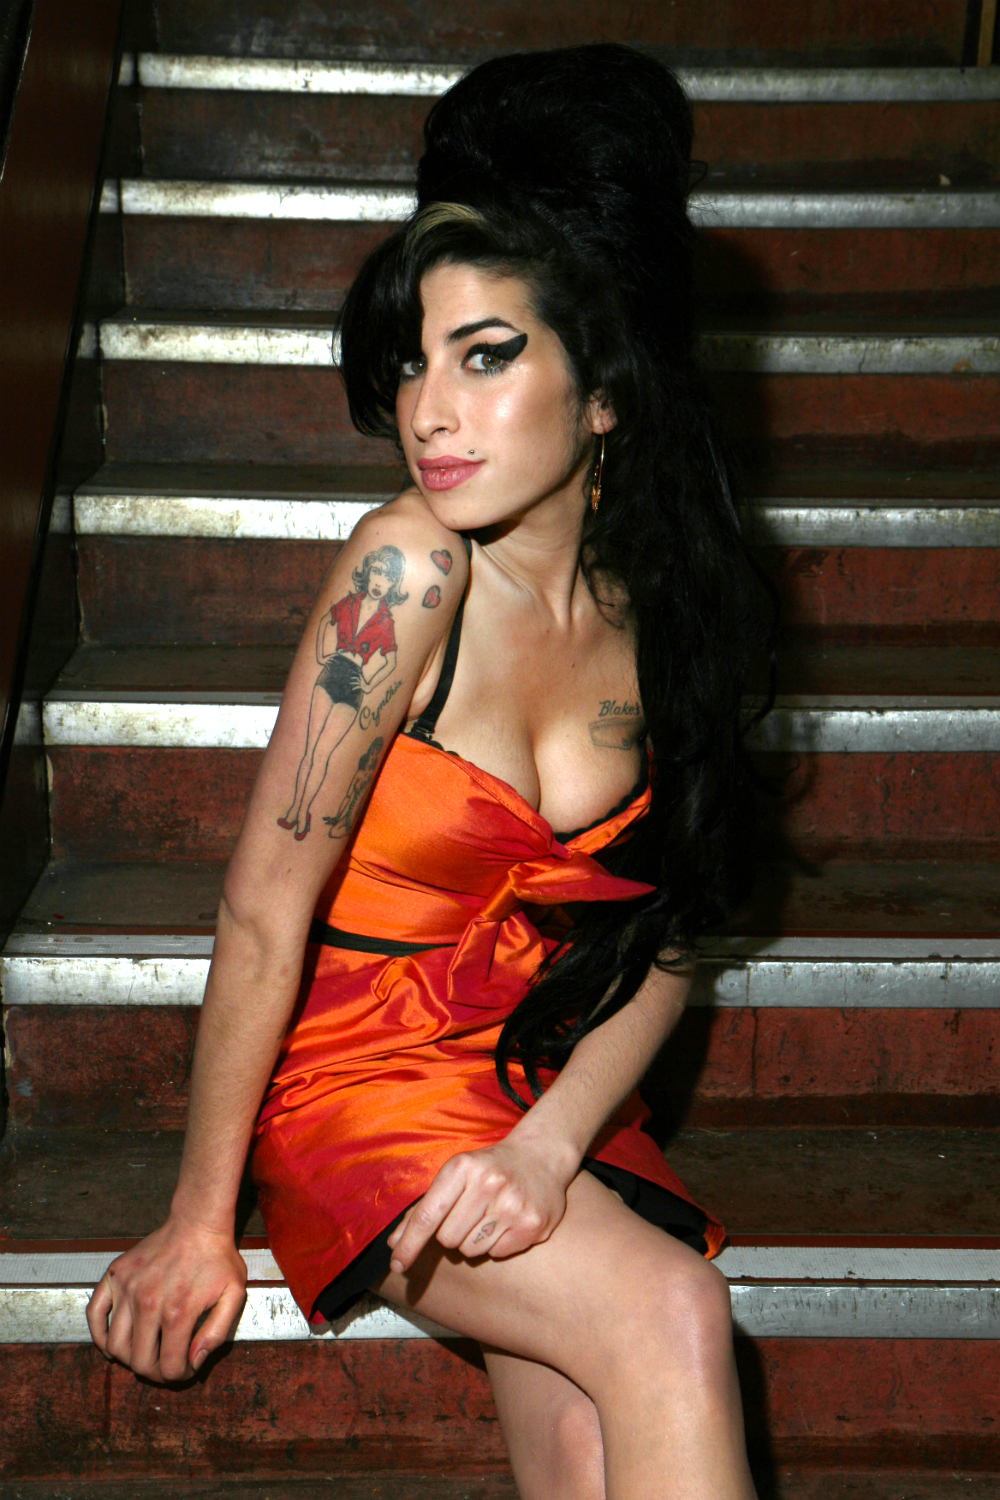 Amy Winehouse, backstage at the Porchester Hall, 2007. Photographer: Mark Allan.